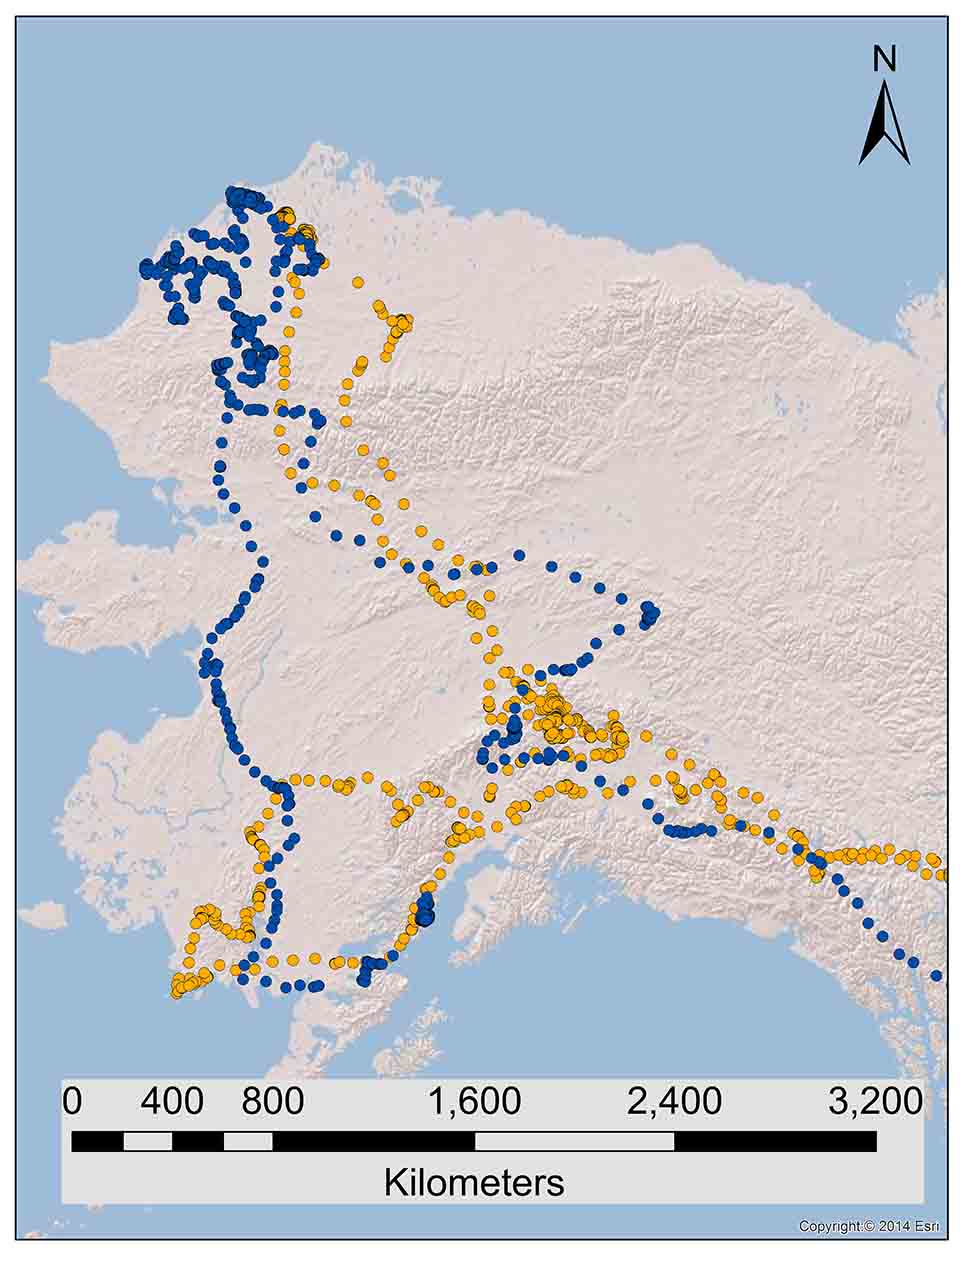 Statewide Movements Of Non Territorial Golden Eagles In Alaska Diagram Additionally Bald Eagle Life Cycle On During The Breeding Season Information For Developing Effective Conservation Plans Us